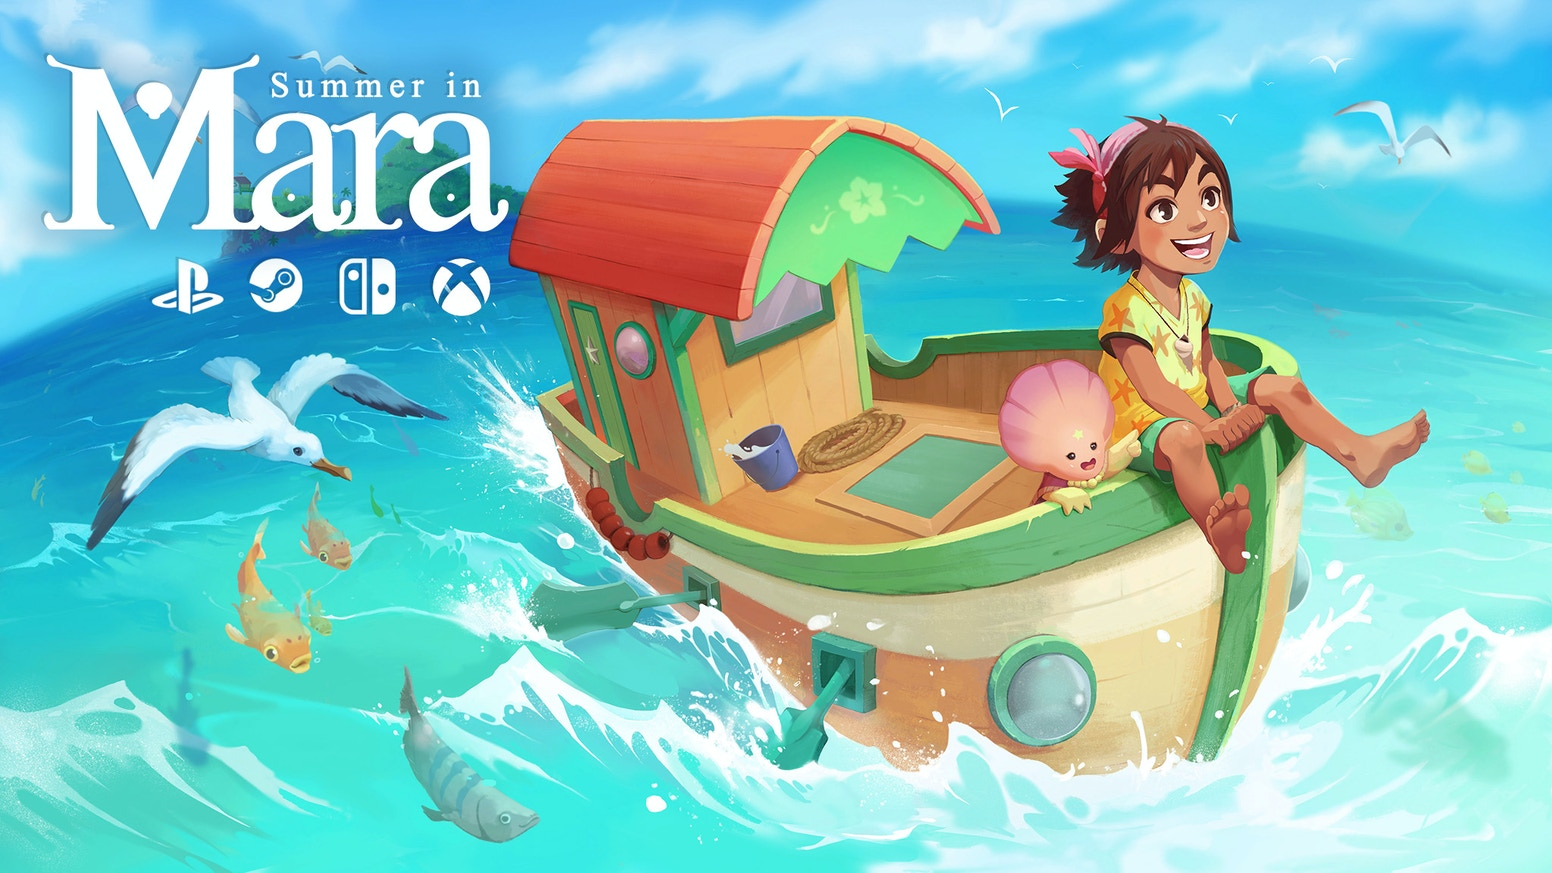 Take care of your own island and explore the ocean in this summer adventure. Summer in Mara mix farming, crafting and exploring mechanics in a tropical archipelago with a colorful style and a strong narrative.